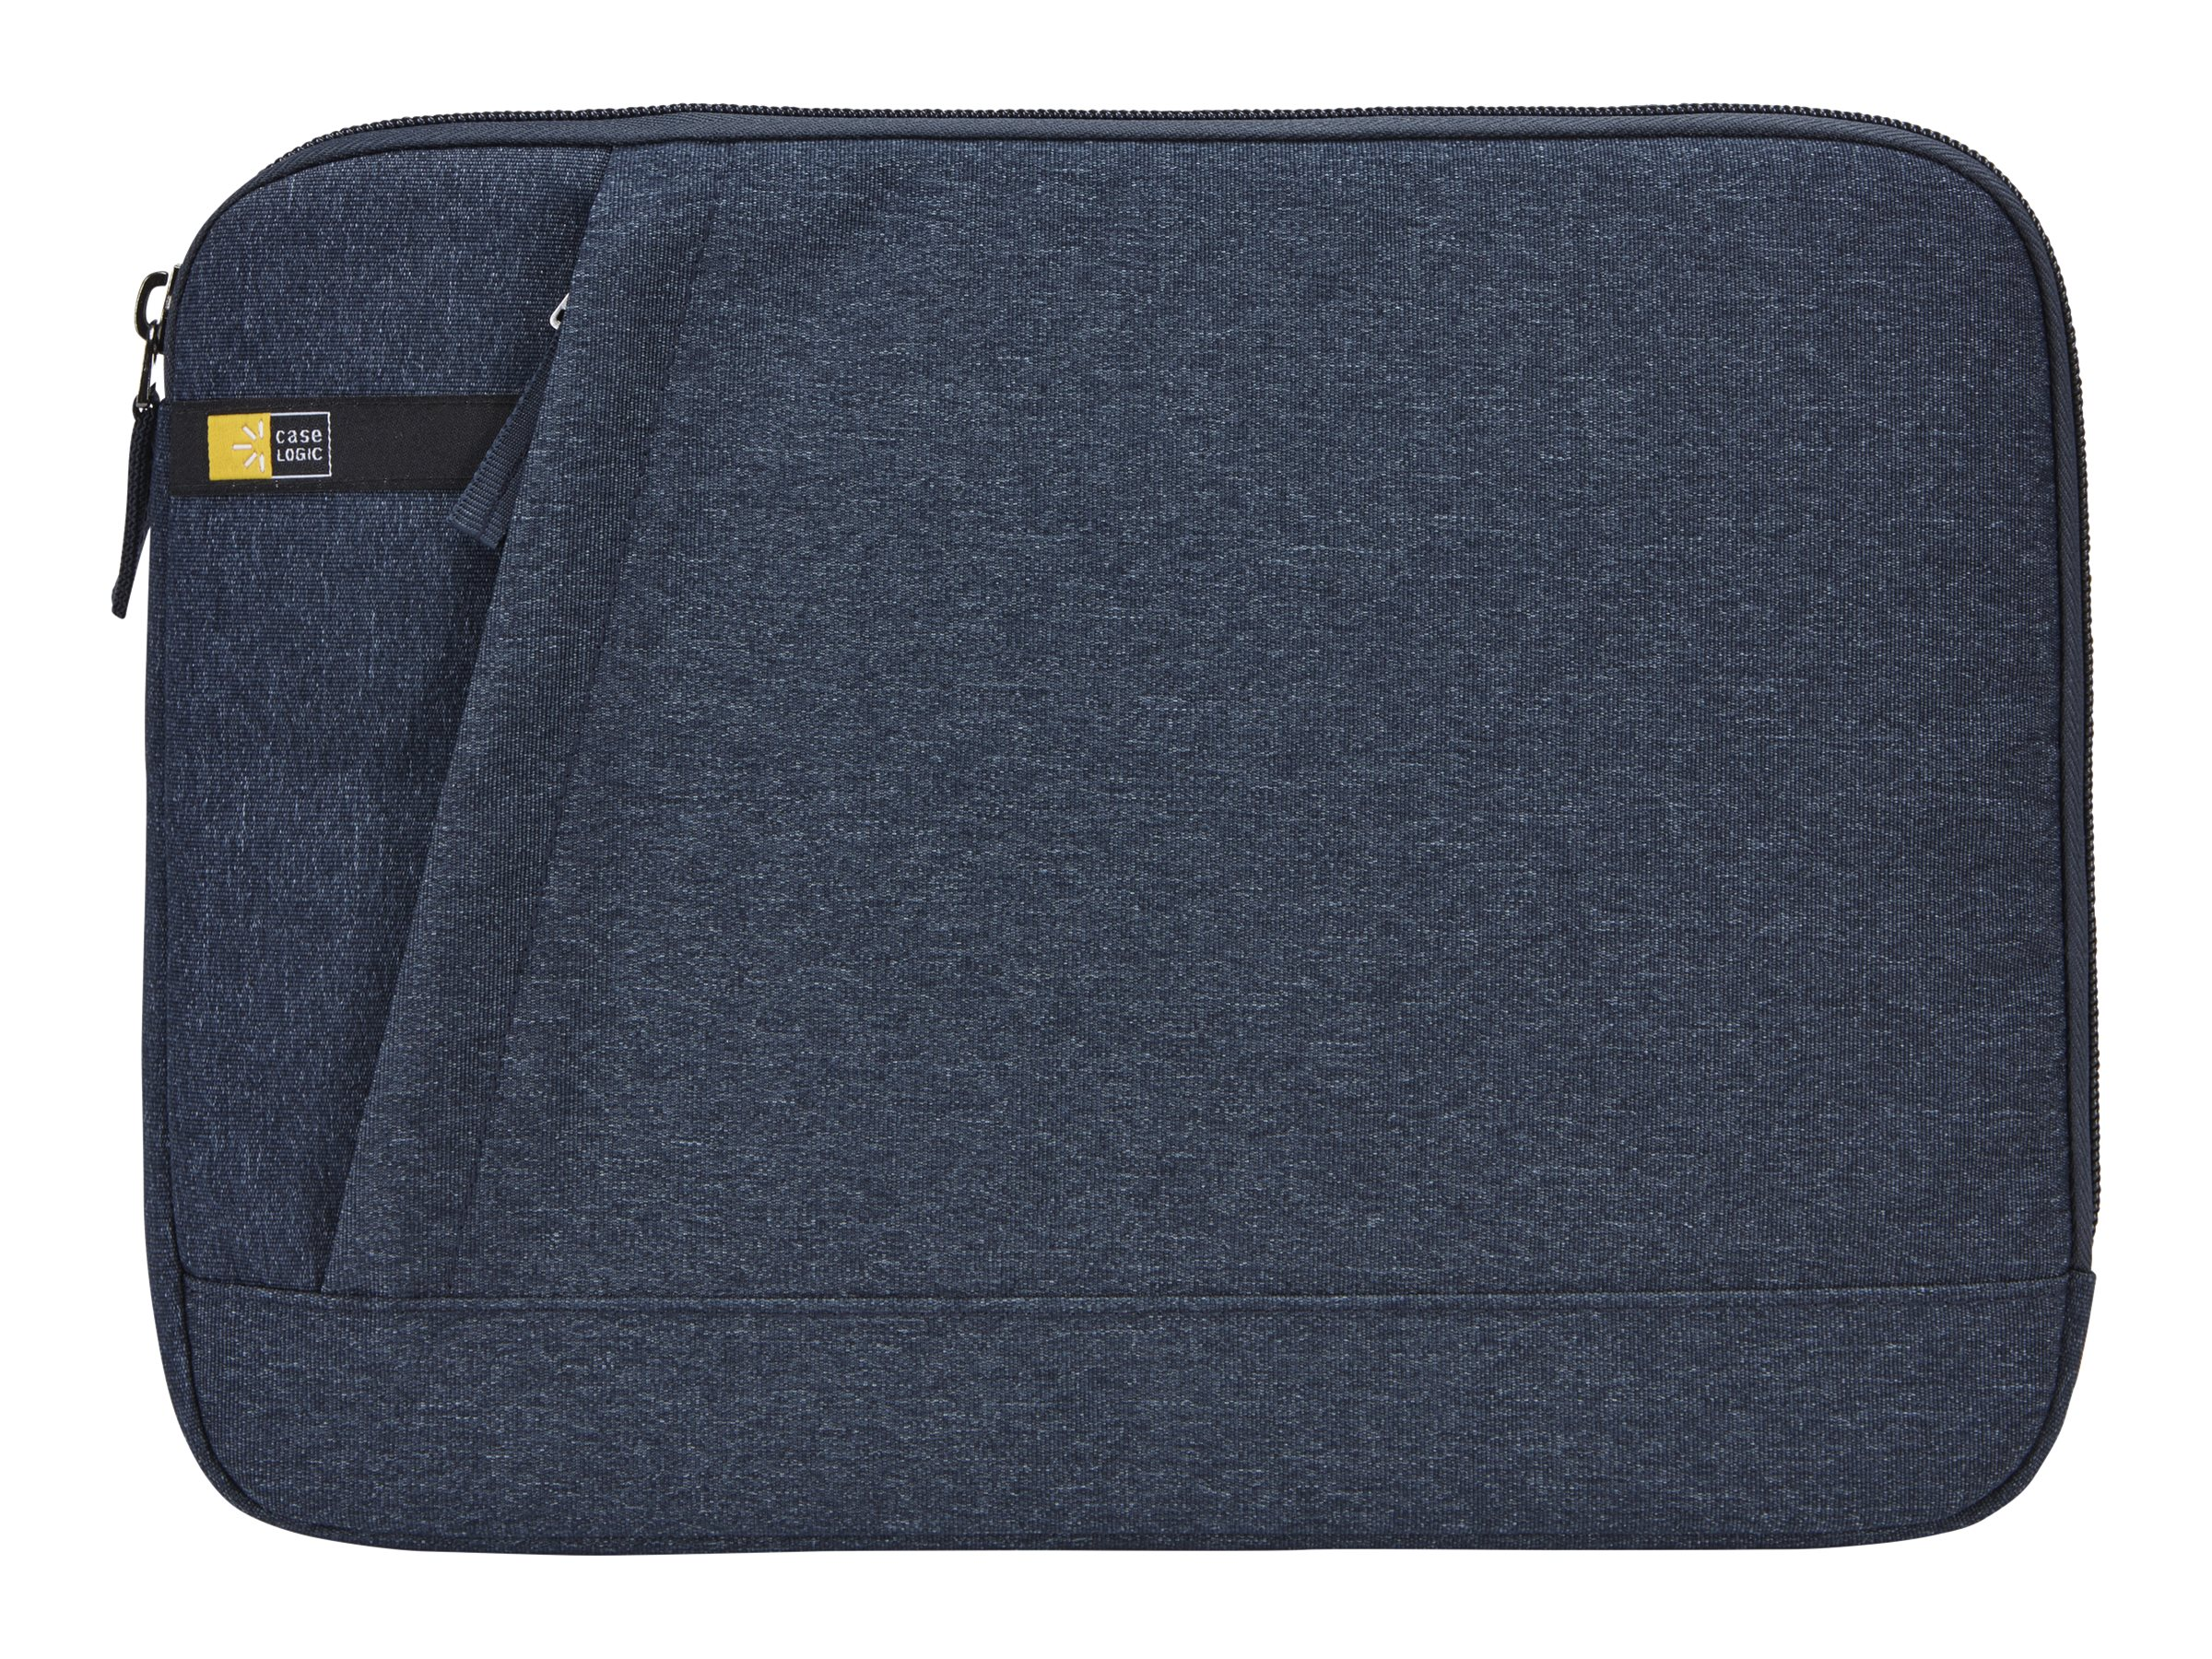 Case Logic Huxton 11.6 Laptop Sleeve, Blue, HUXS111BLUE, 30639981, Carrying Cases - Notebook